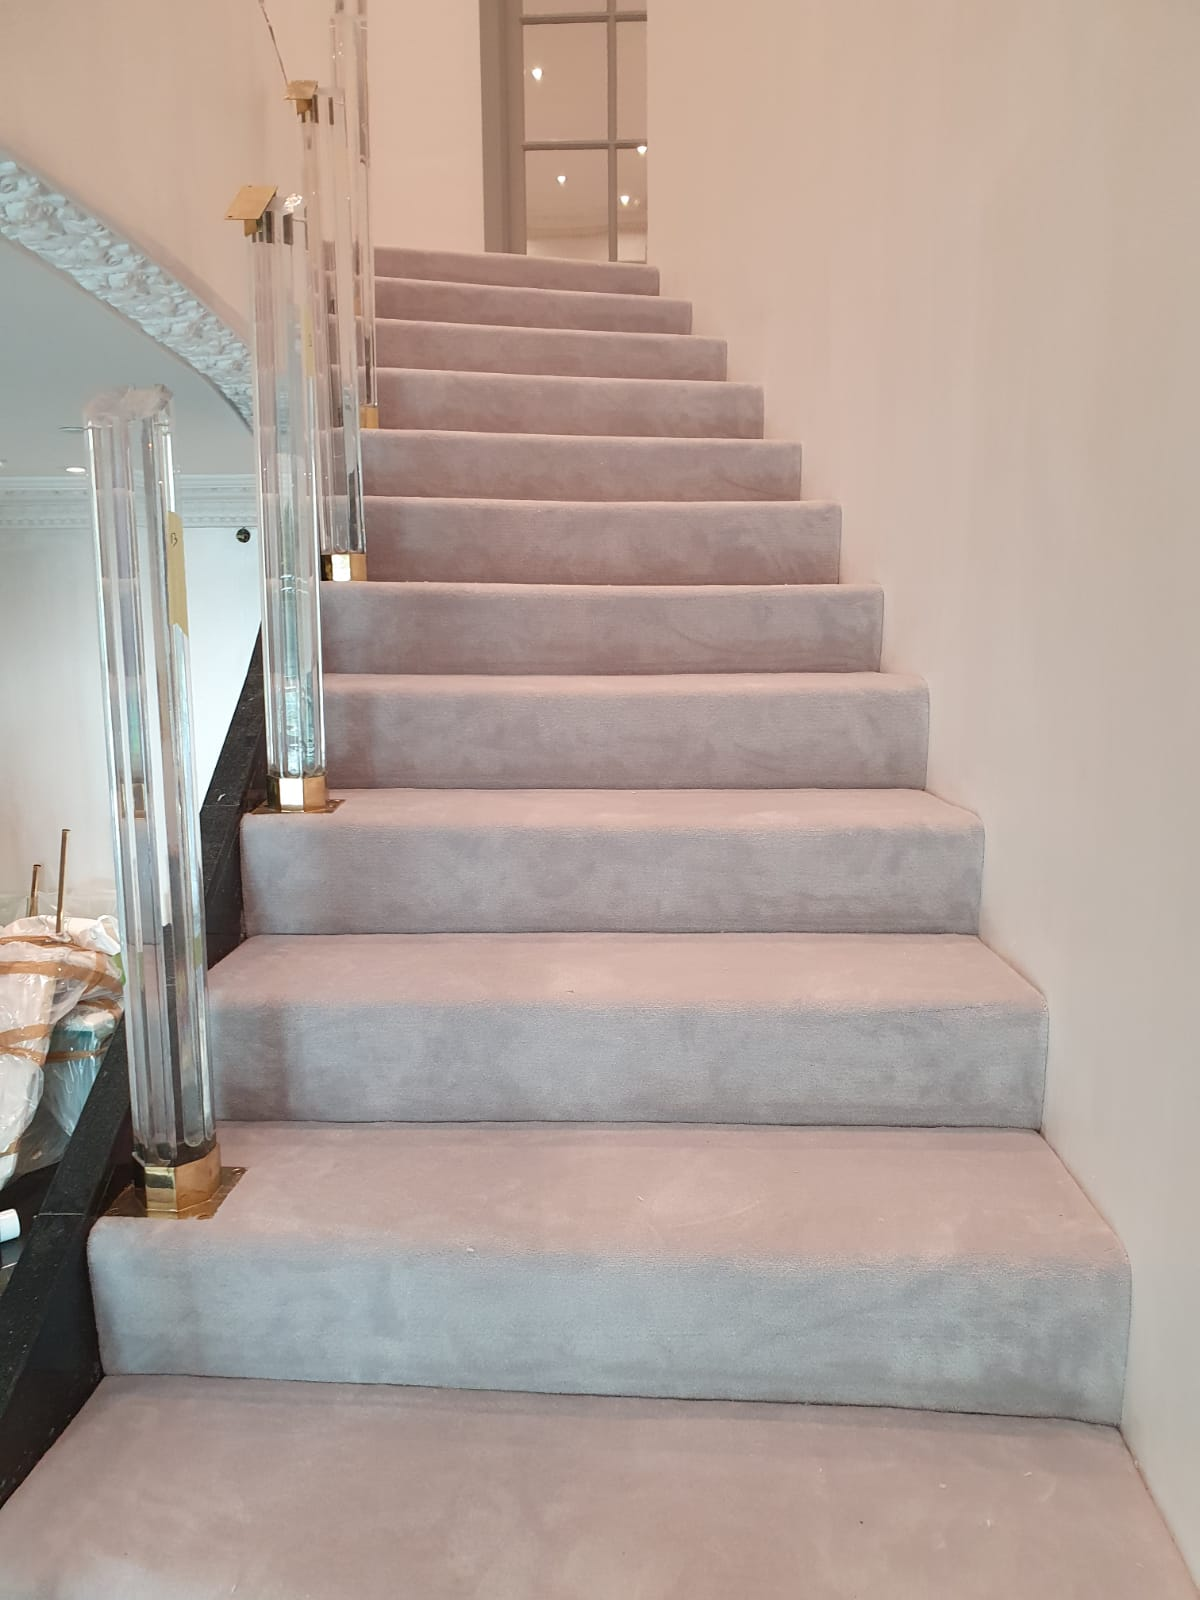 Westex Silken Velvet Vogue Moonstone Carpet in Fulham 1